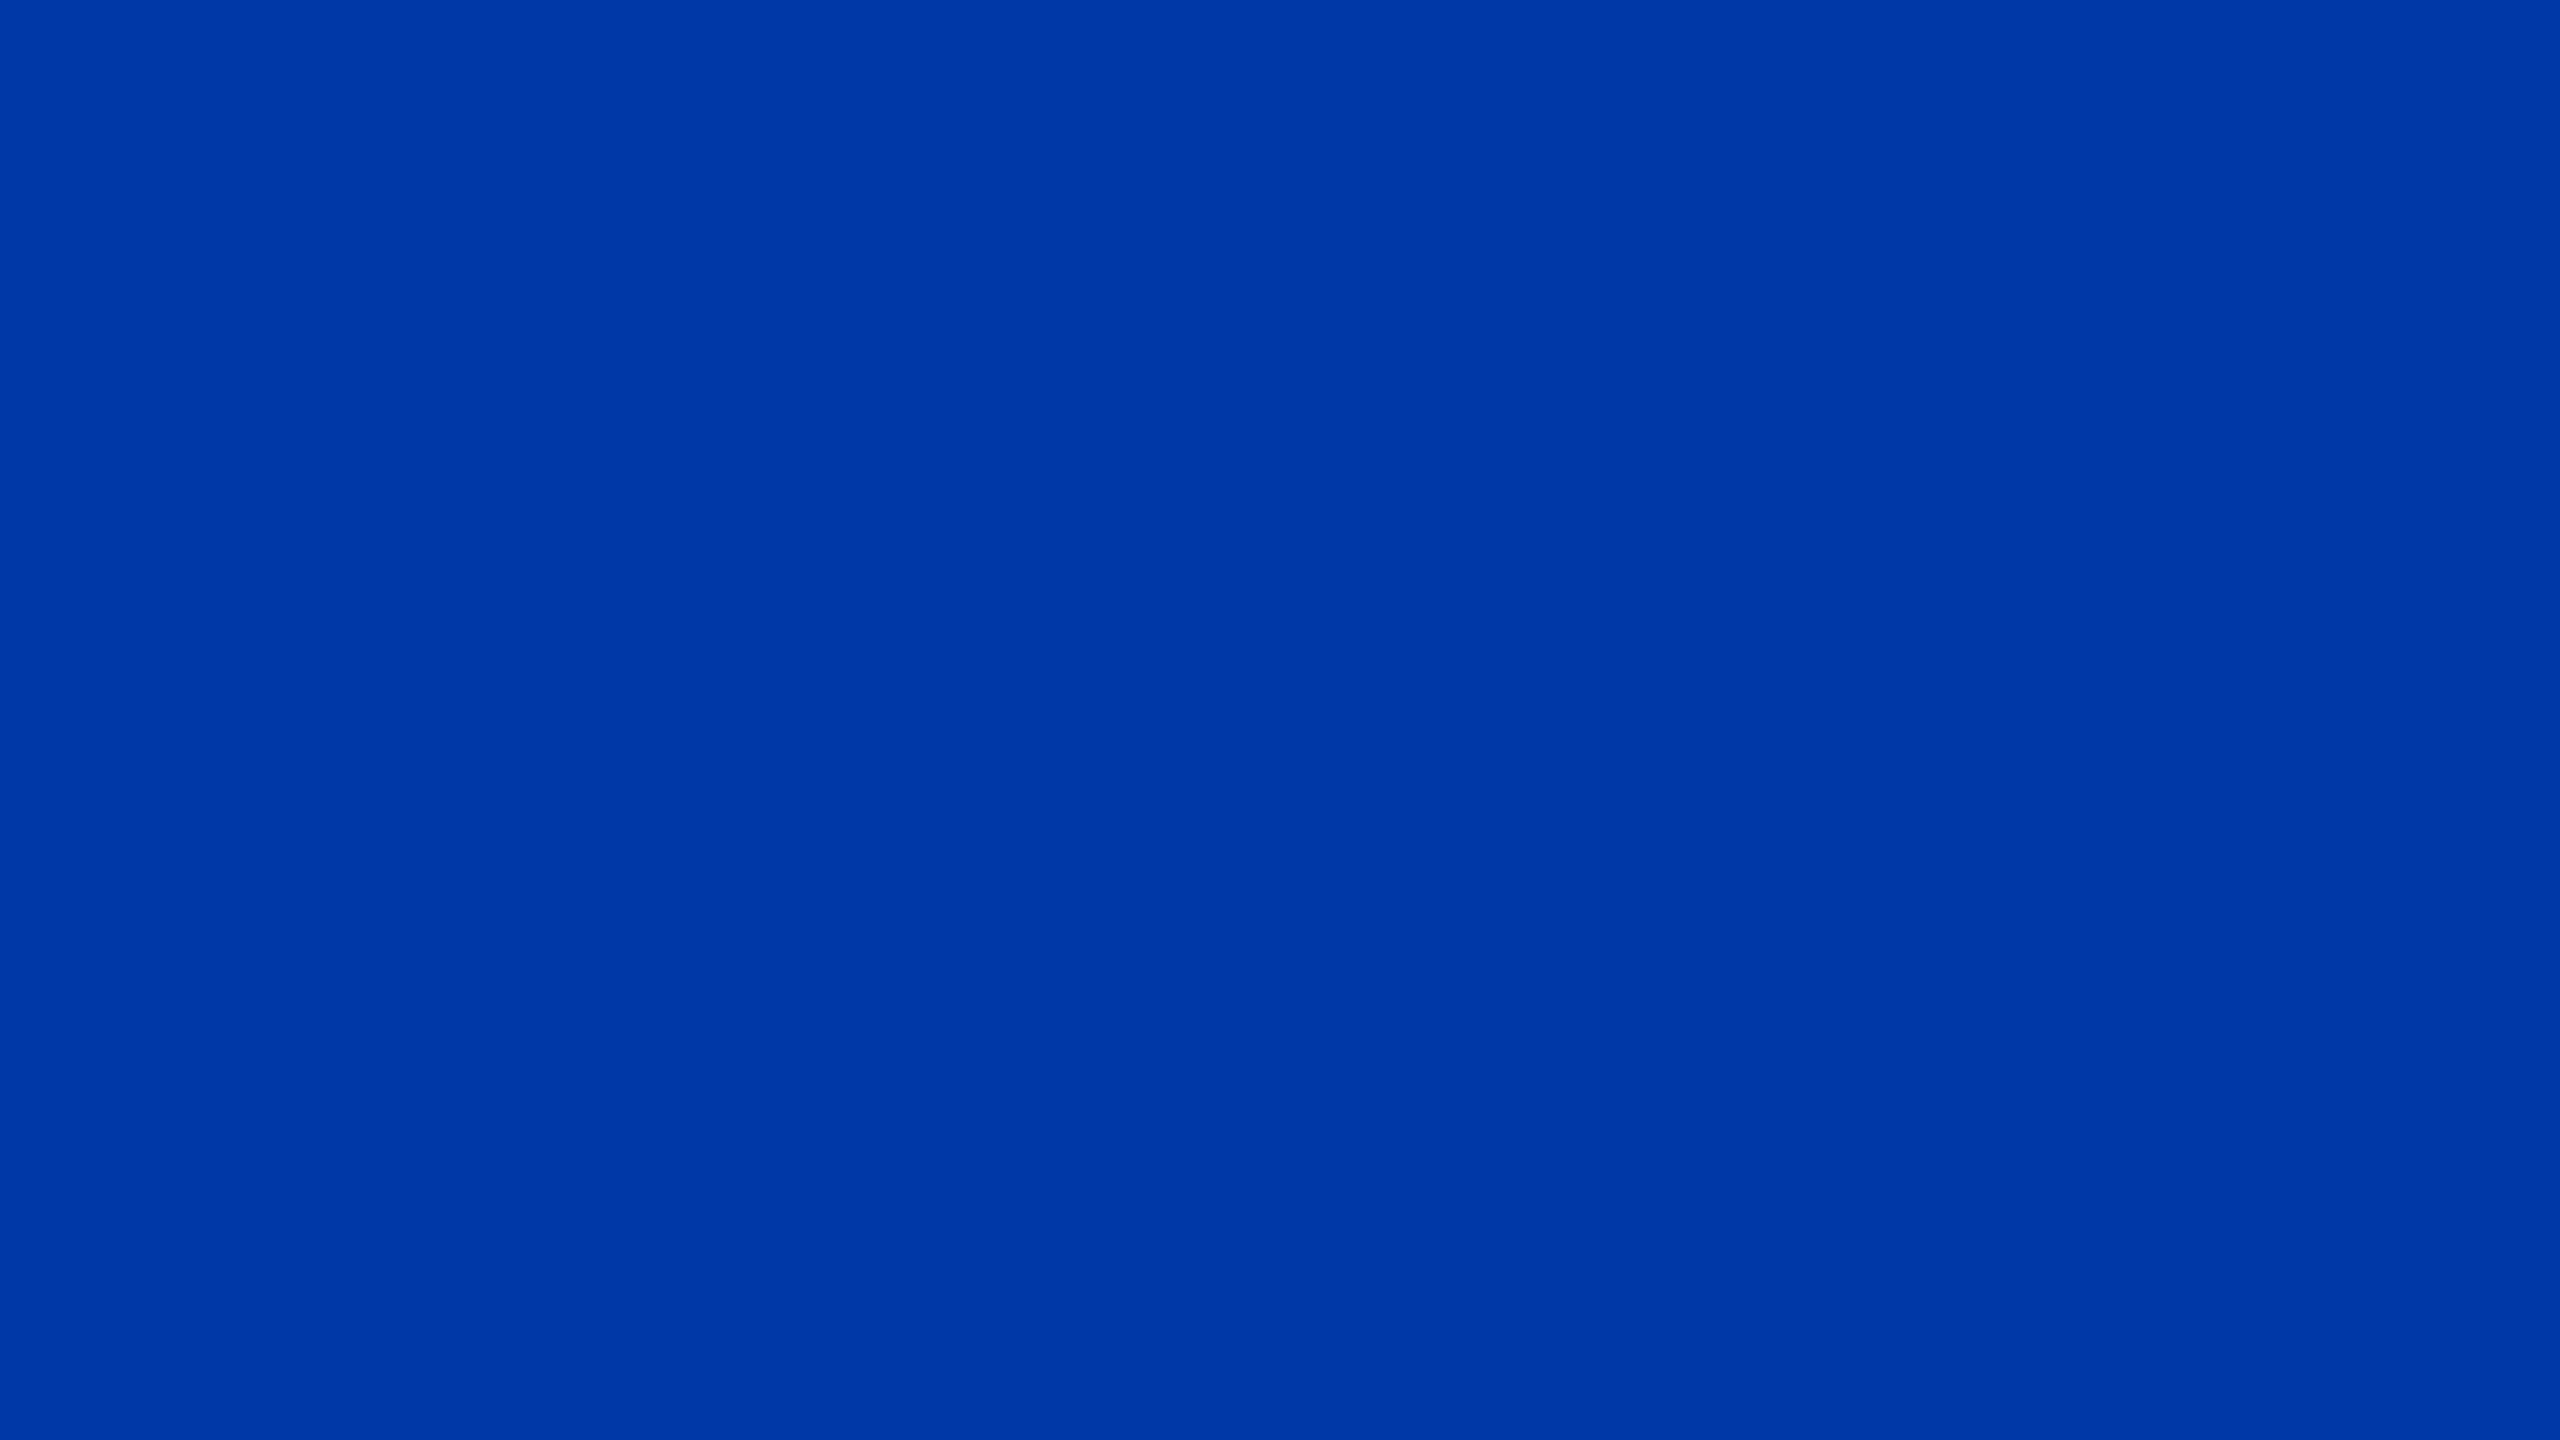 2560x1440 Royal Azure Solid Color Background